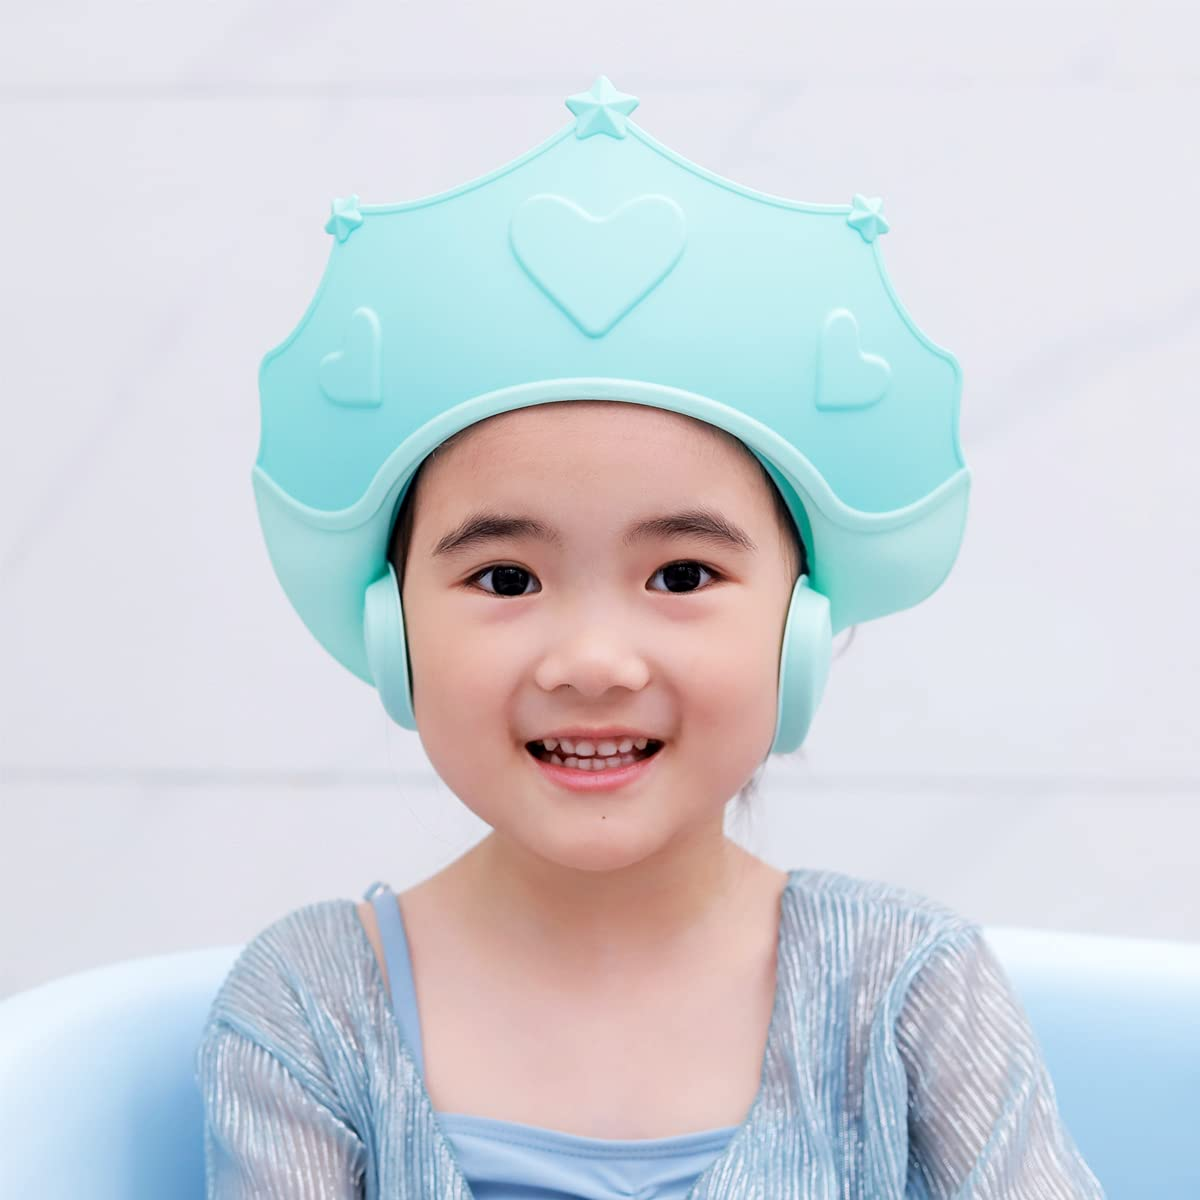 Baby Shower Cap Shampoo Visor Shield hat Kids Bath Washing Hair Rinser Prevents Water from Pooling in Face for Protector Toddler Children Eyes and Ears (Blue)